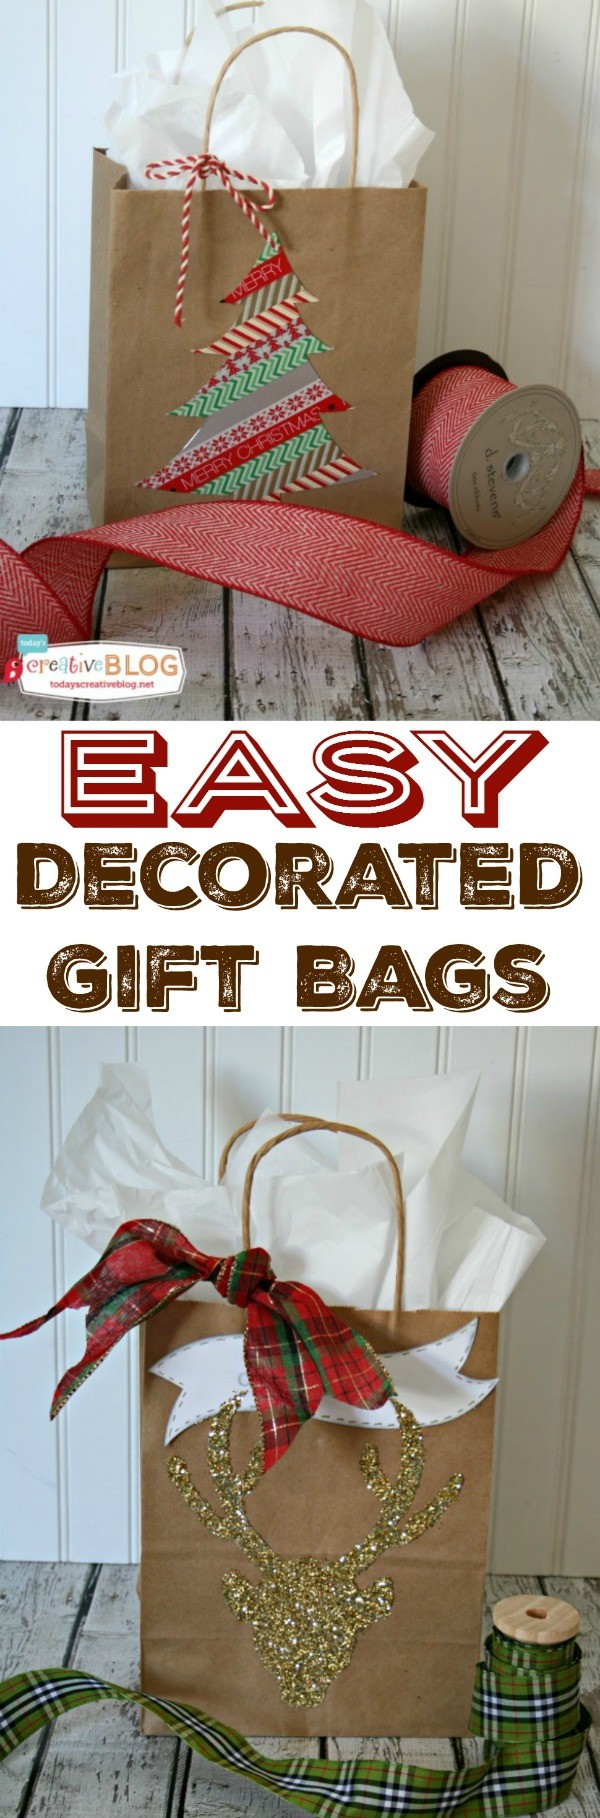 Easy Diy Gift Wrap Quick And Holiday Wring Using Bags Glitter